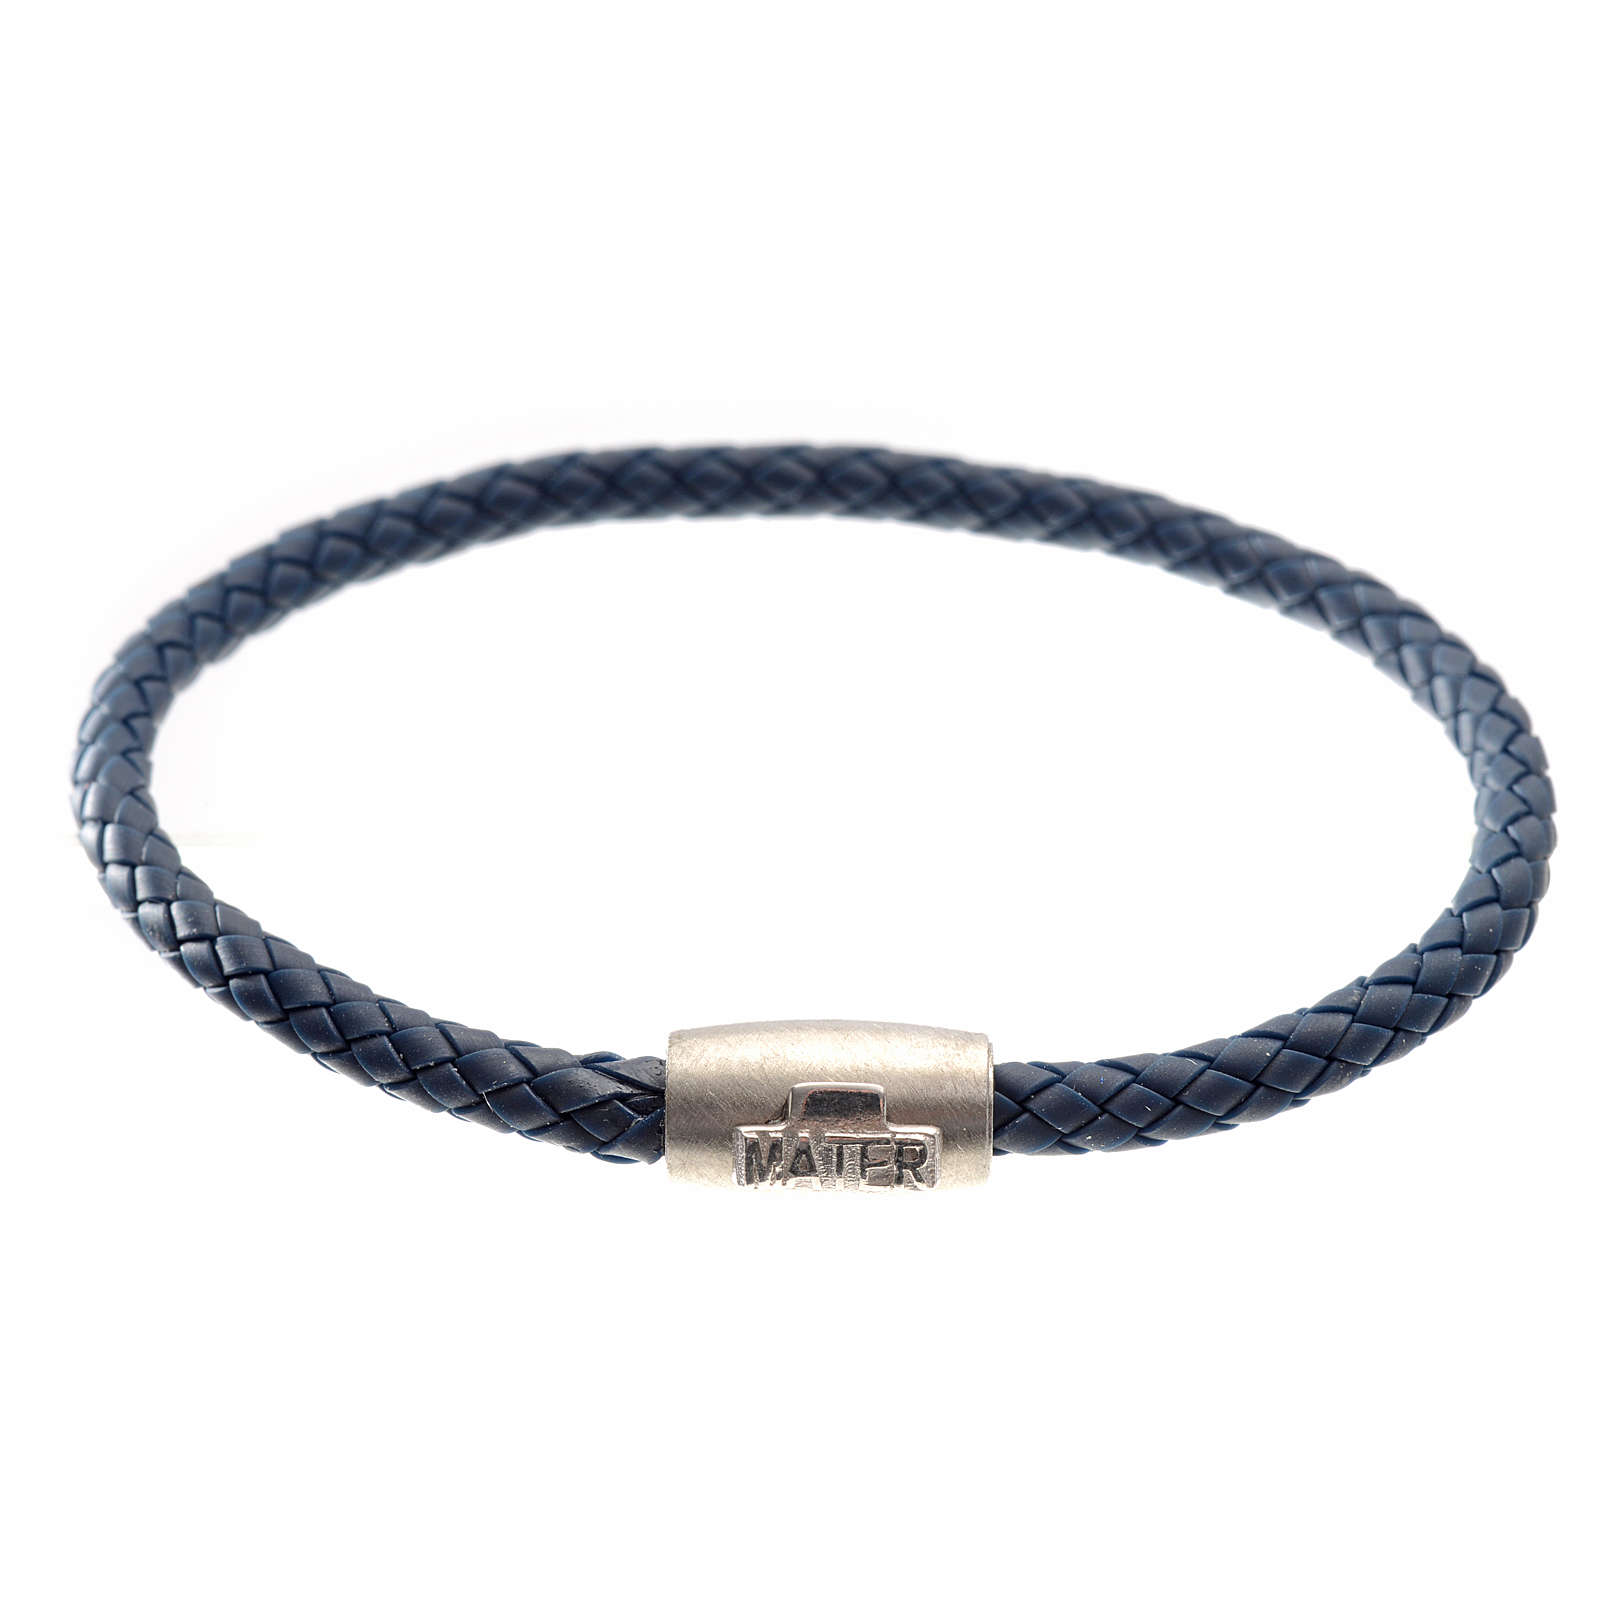 Bracelet in blue leather with silver cross, MATER jewels 4